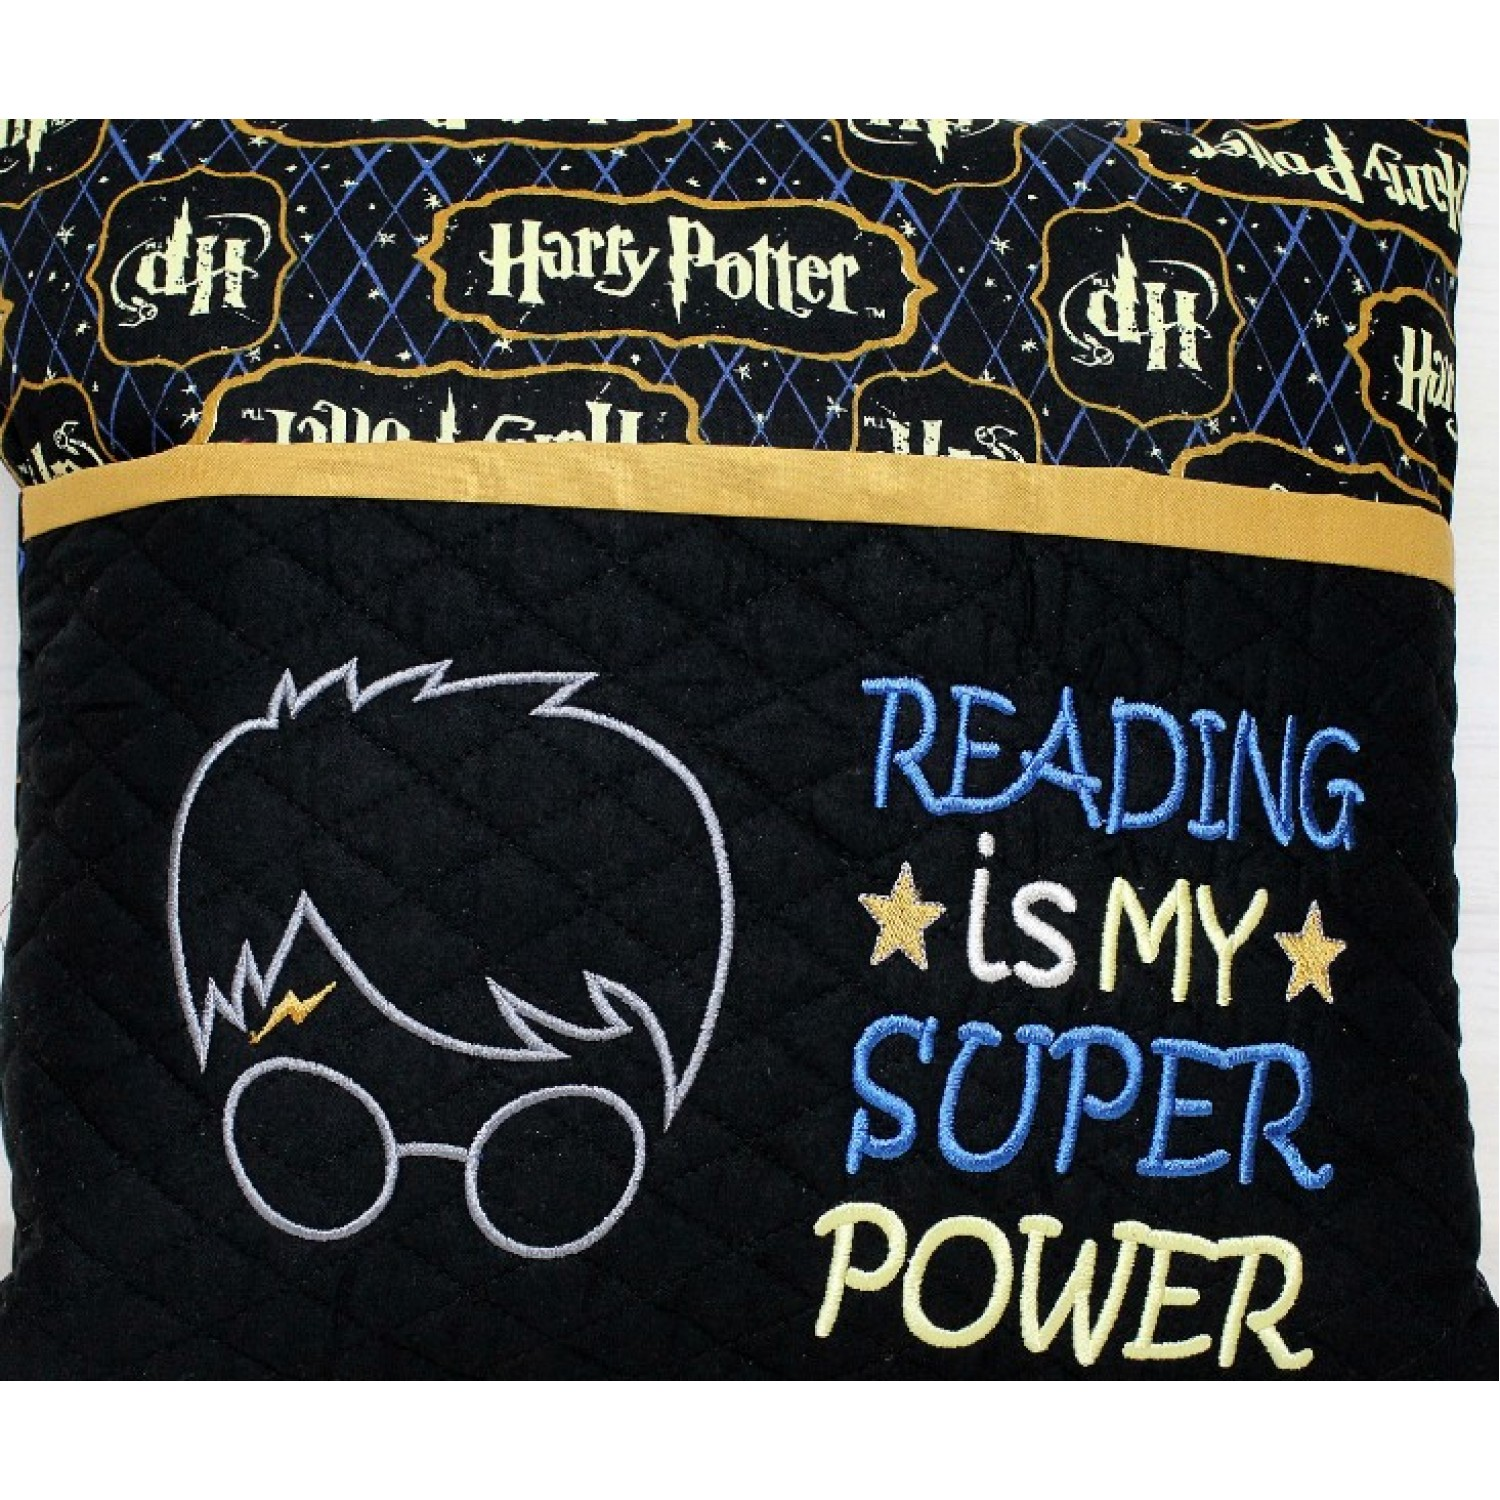 harry potter face applique with Reading is My Super power 2 designs 3 sizes